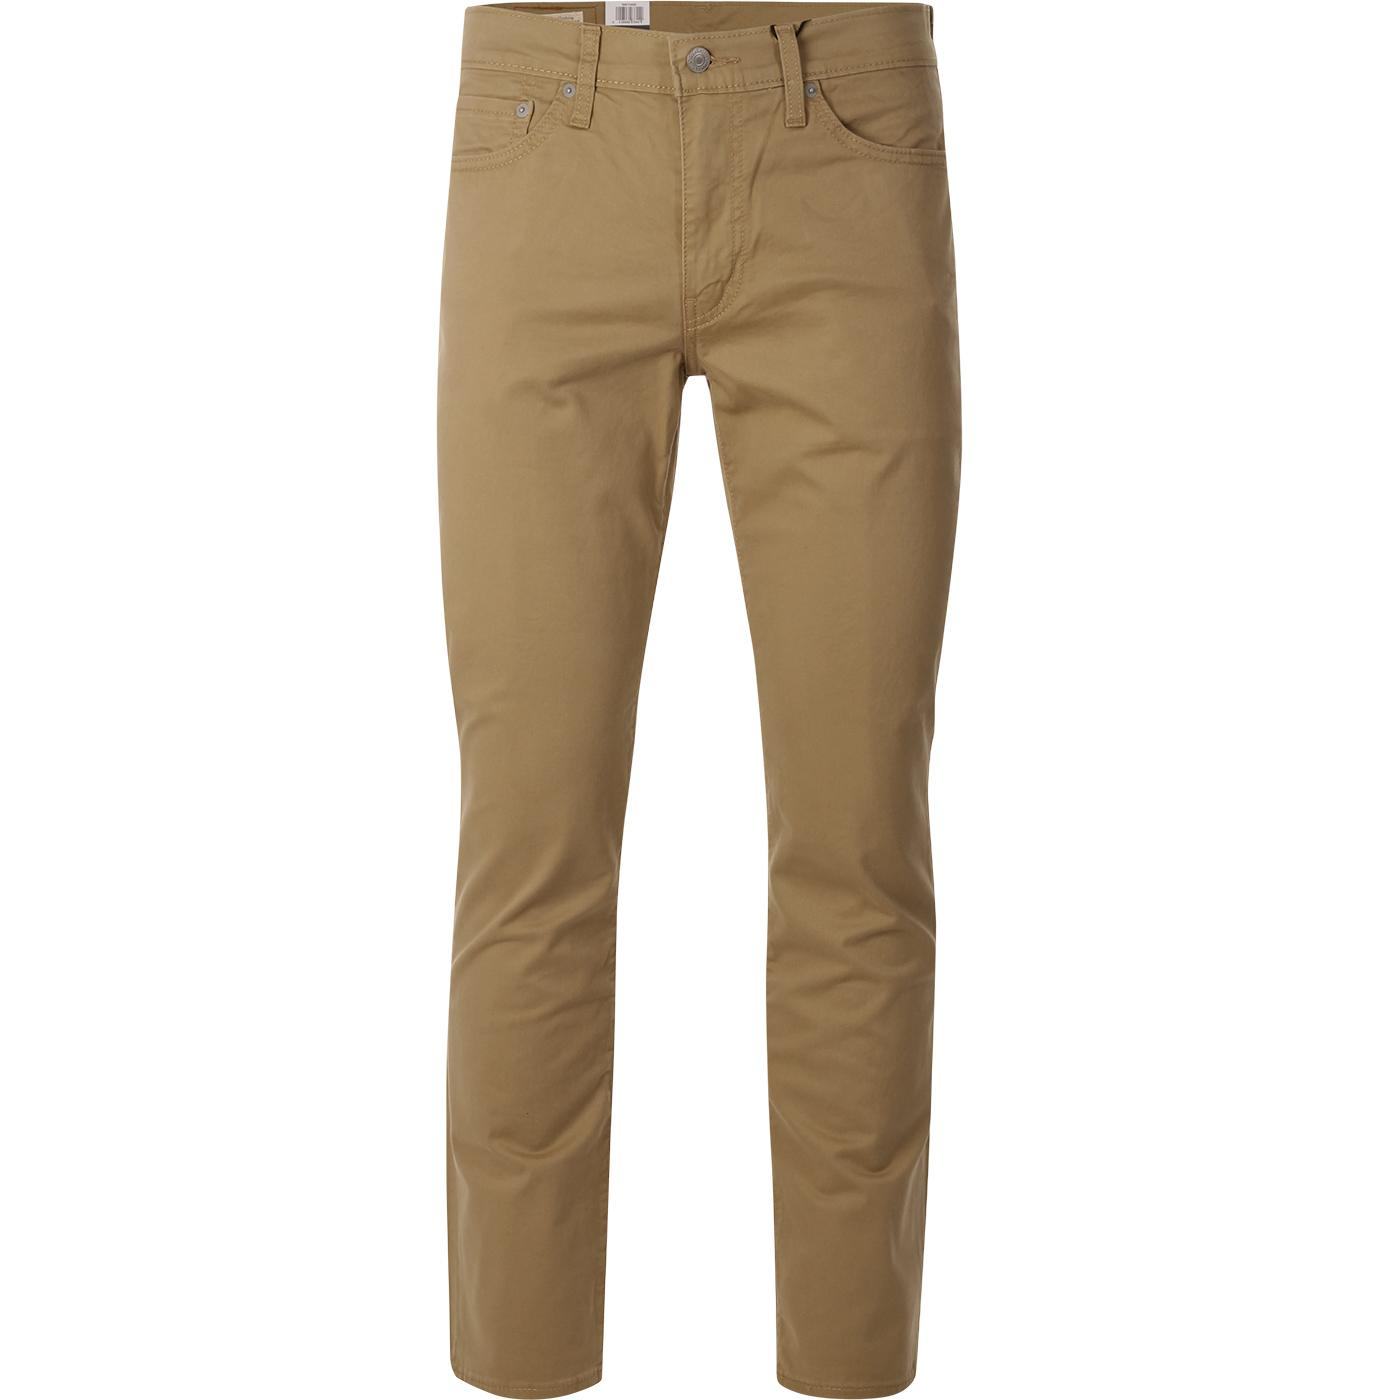 LEVI'S 511 Slim Fit Sueded Sateen Chinos (HG)